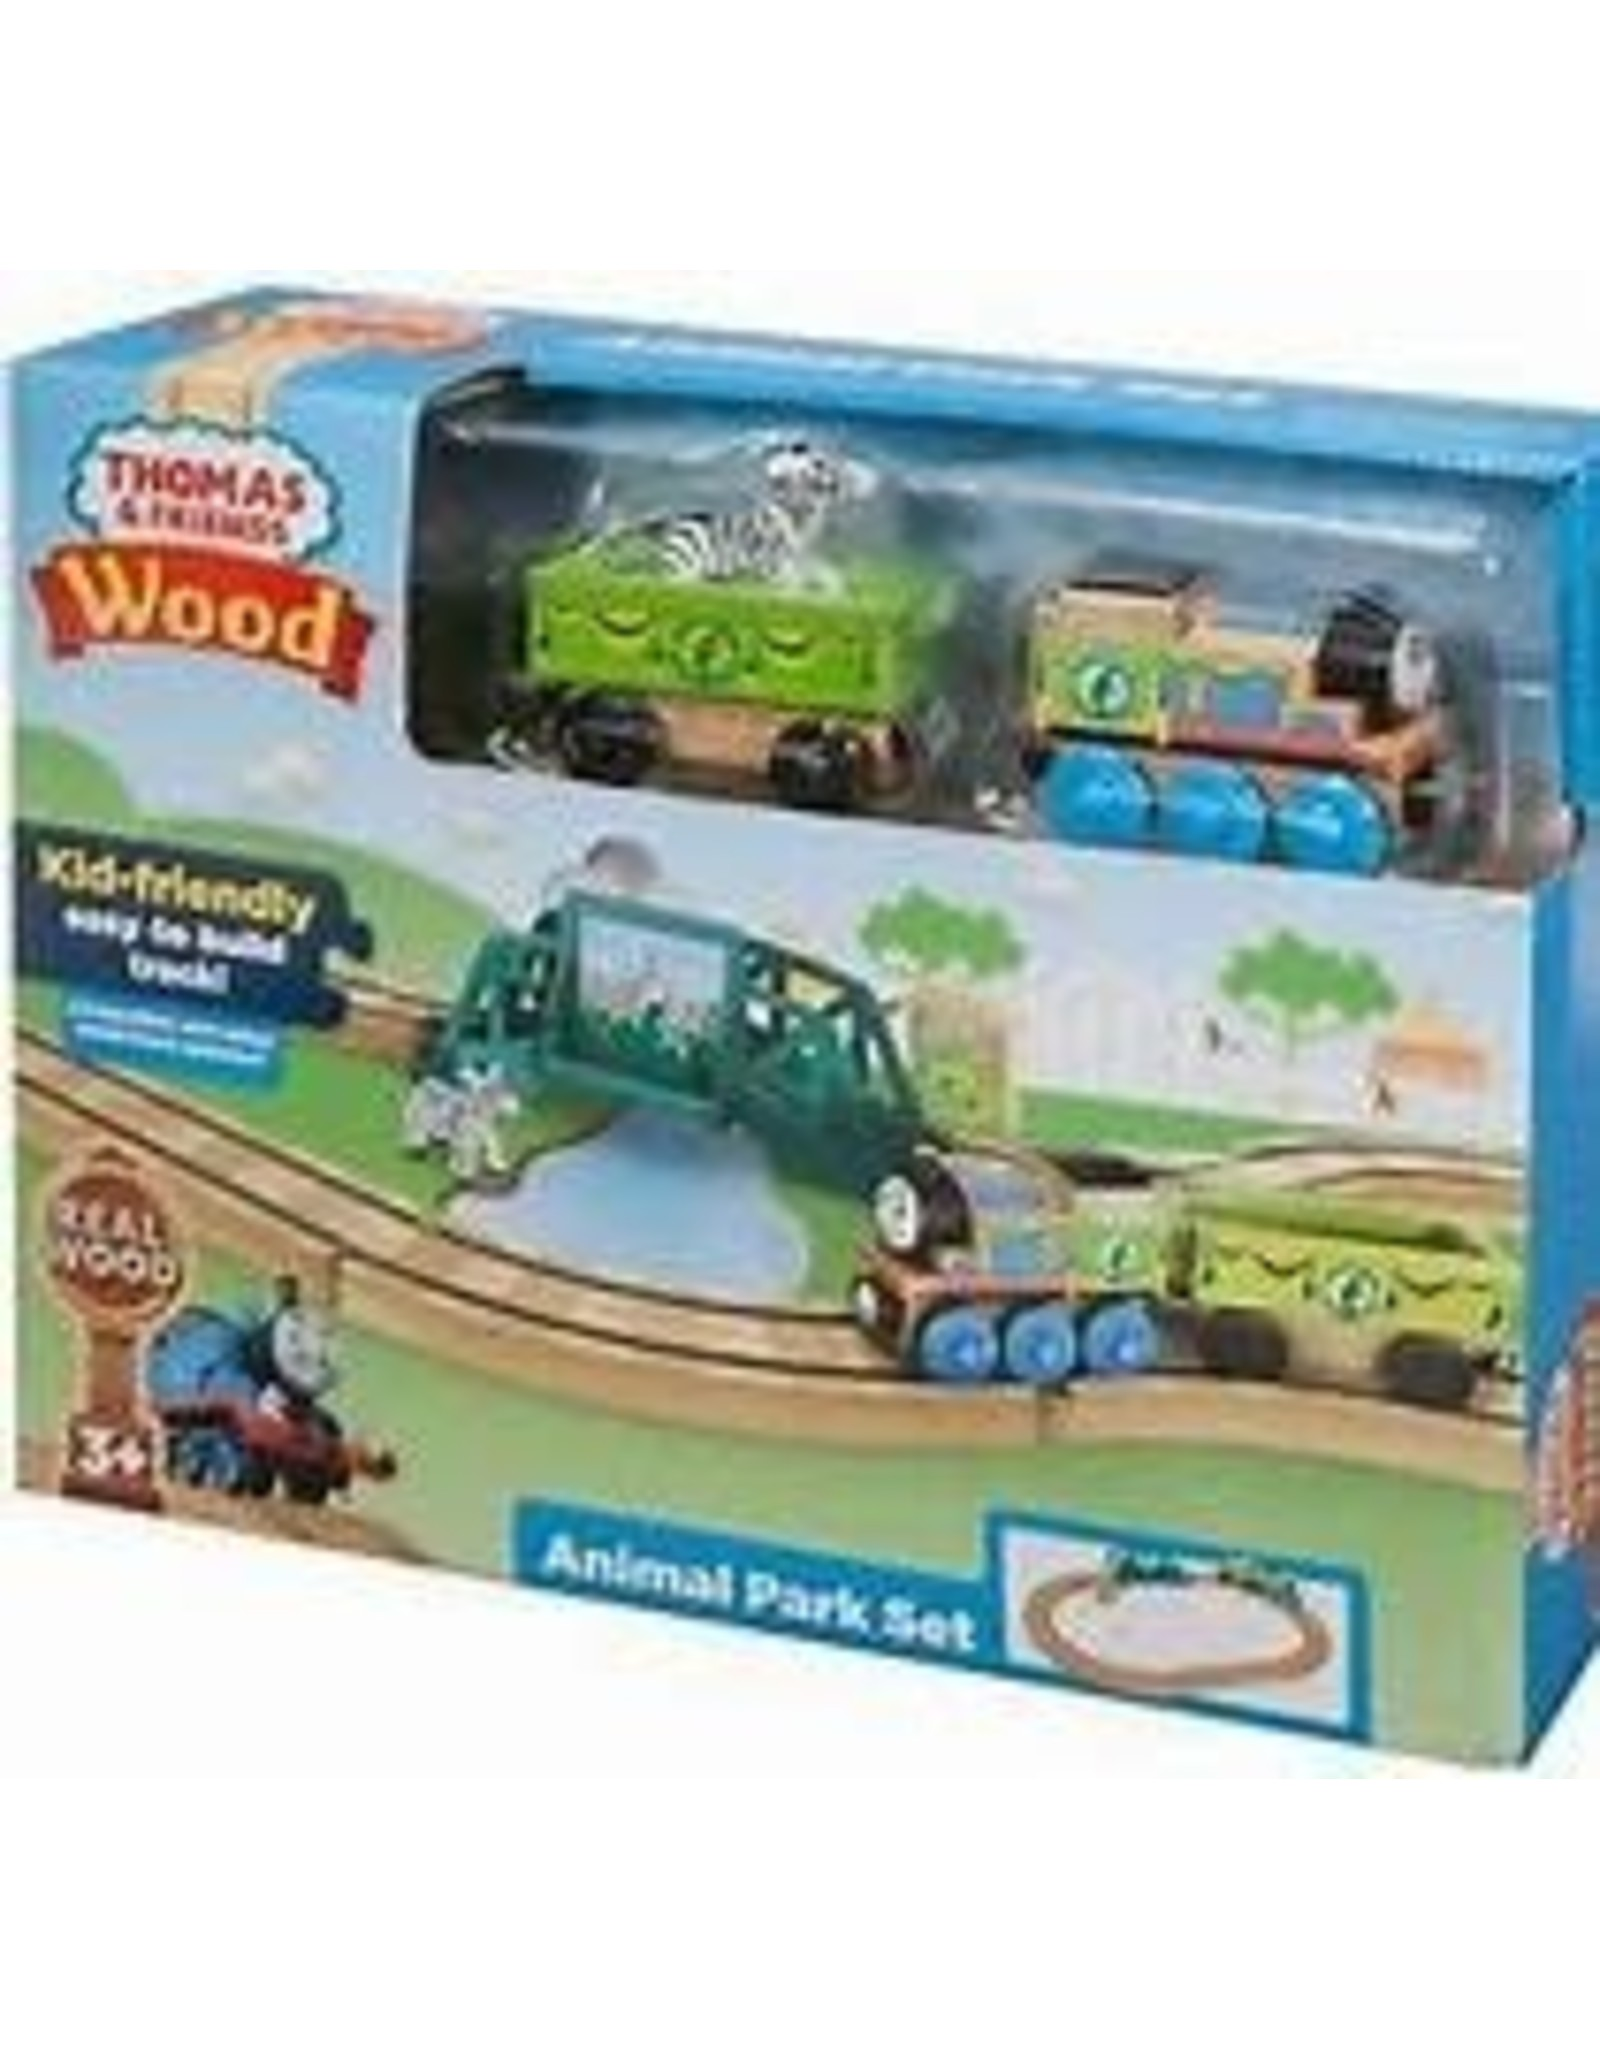 Thomas and Friends FP Thomas Wood Animal Park Set